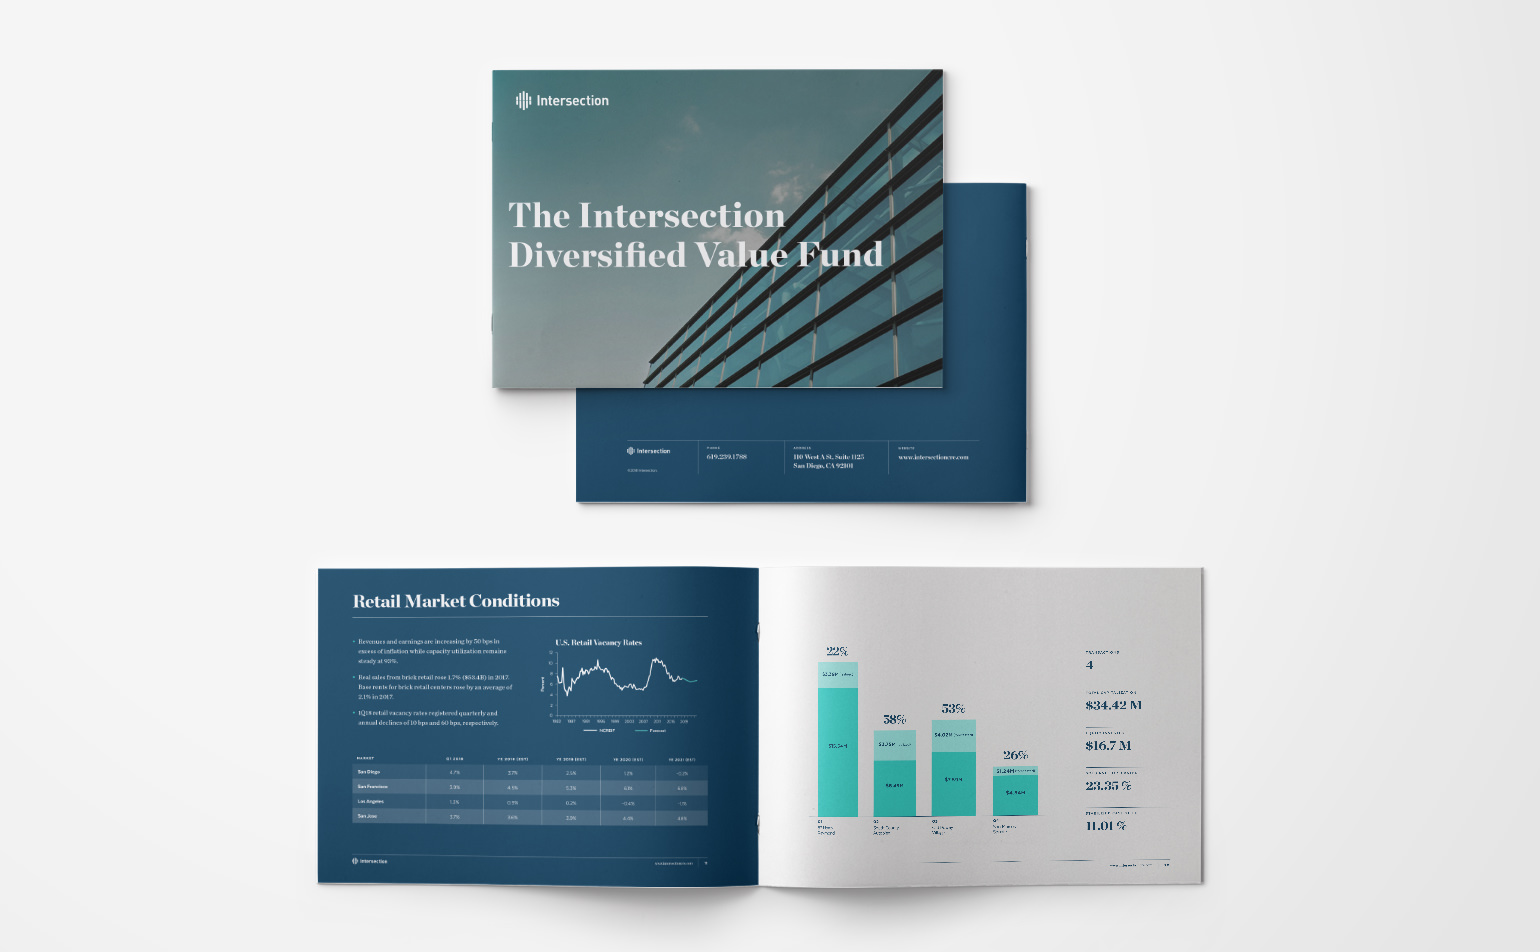 Ignyte-Branding-Agency-Intersection-Marketing-Collateral-V5-Diversification-Fund-Brochure